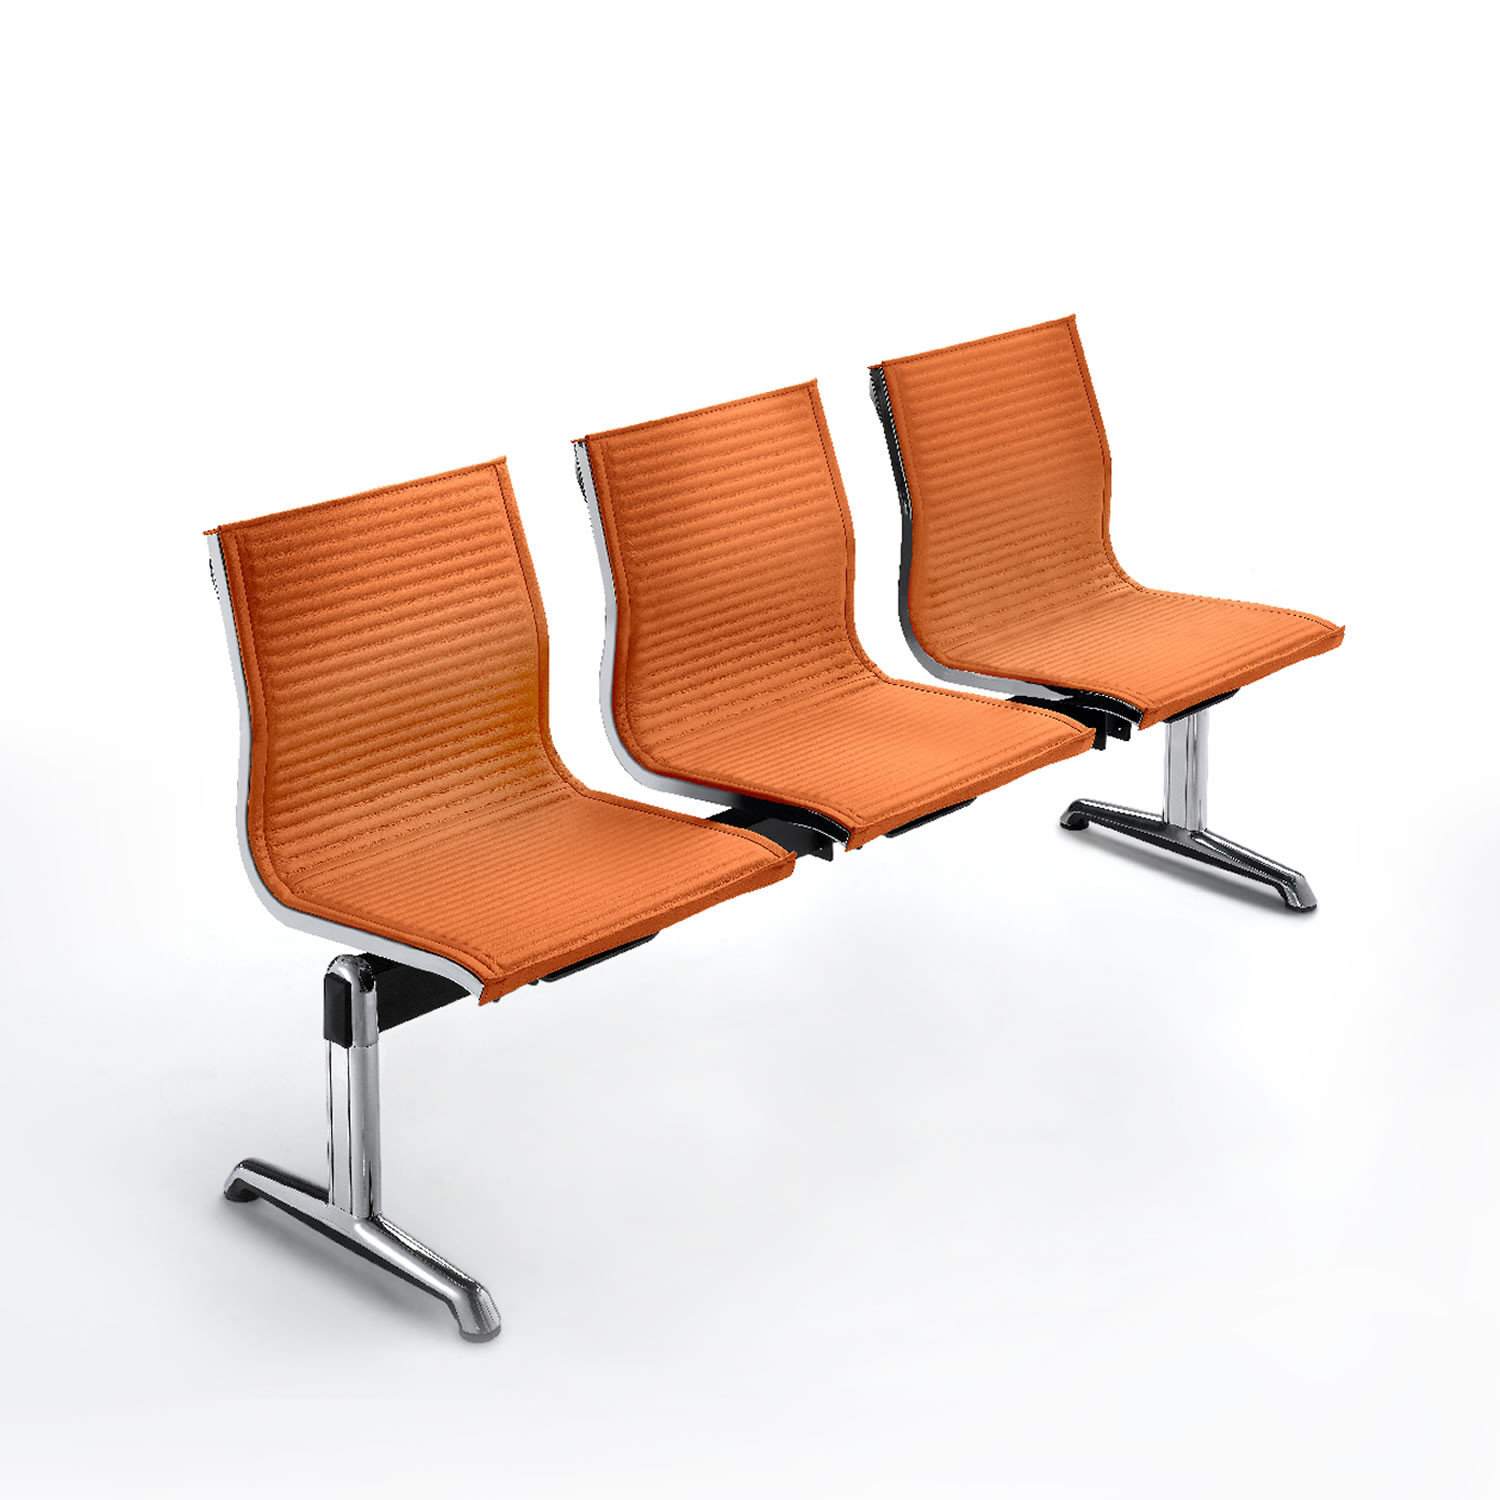 Nulite Modular Chairs without armrests